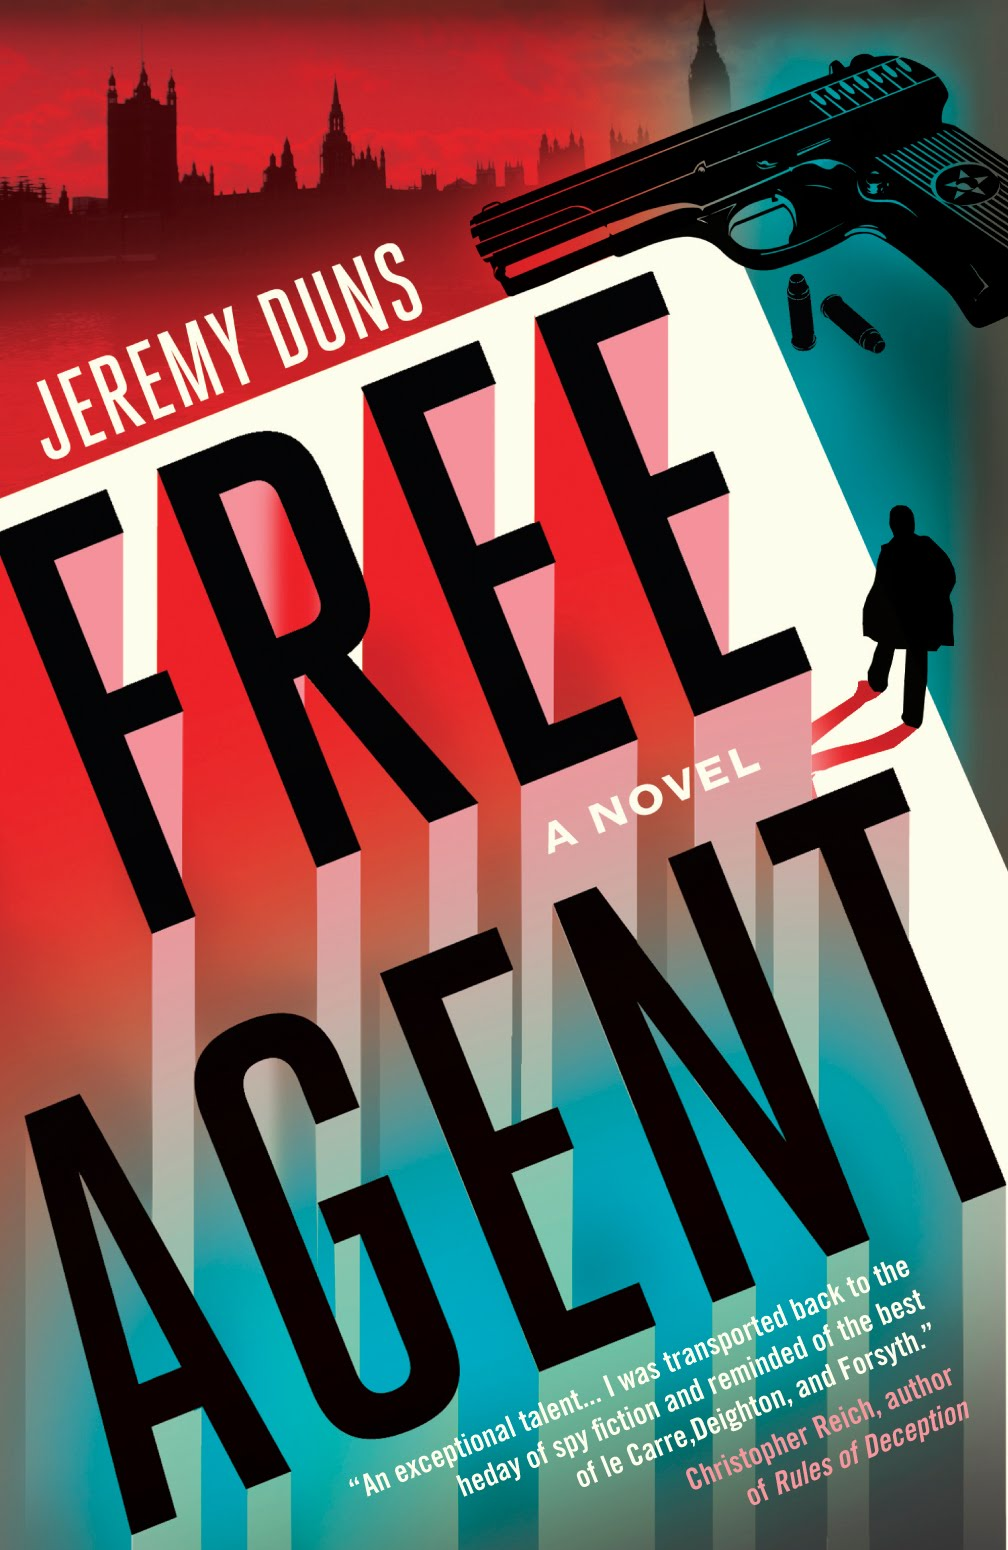 existential ennui spy fiction fortnight free agent by jeremy duns